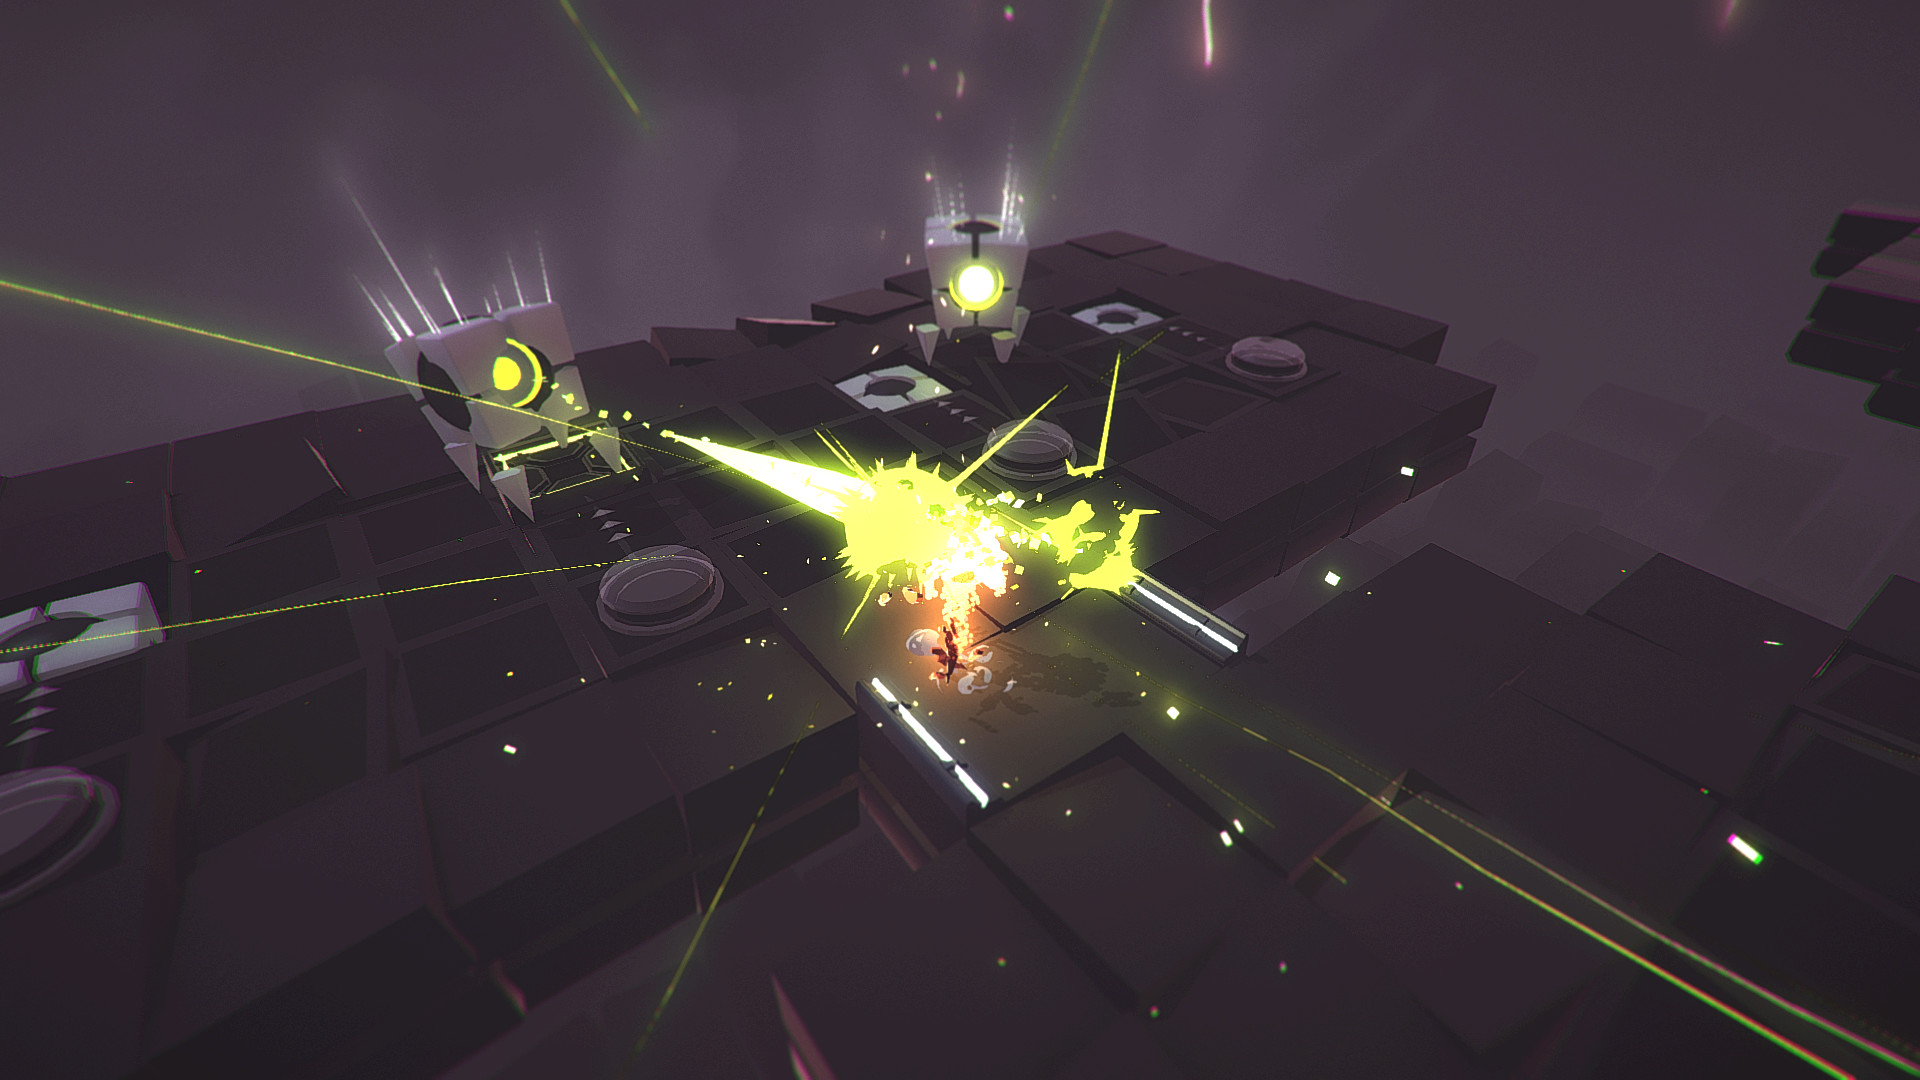 Recompile Preview: A Viral, Frenetic Metroidvania